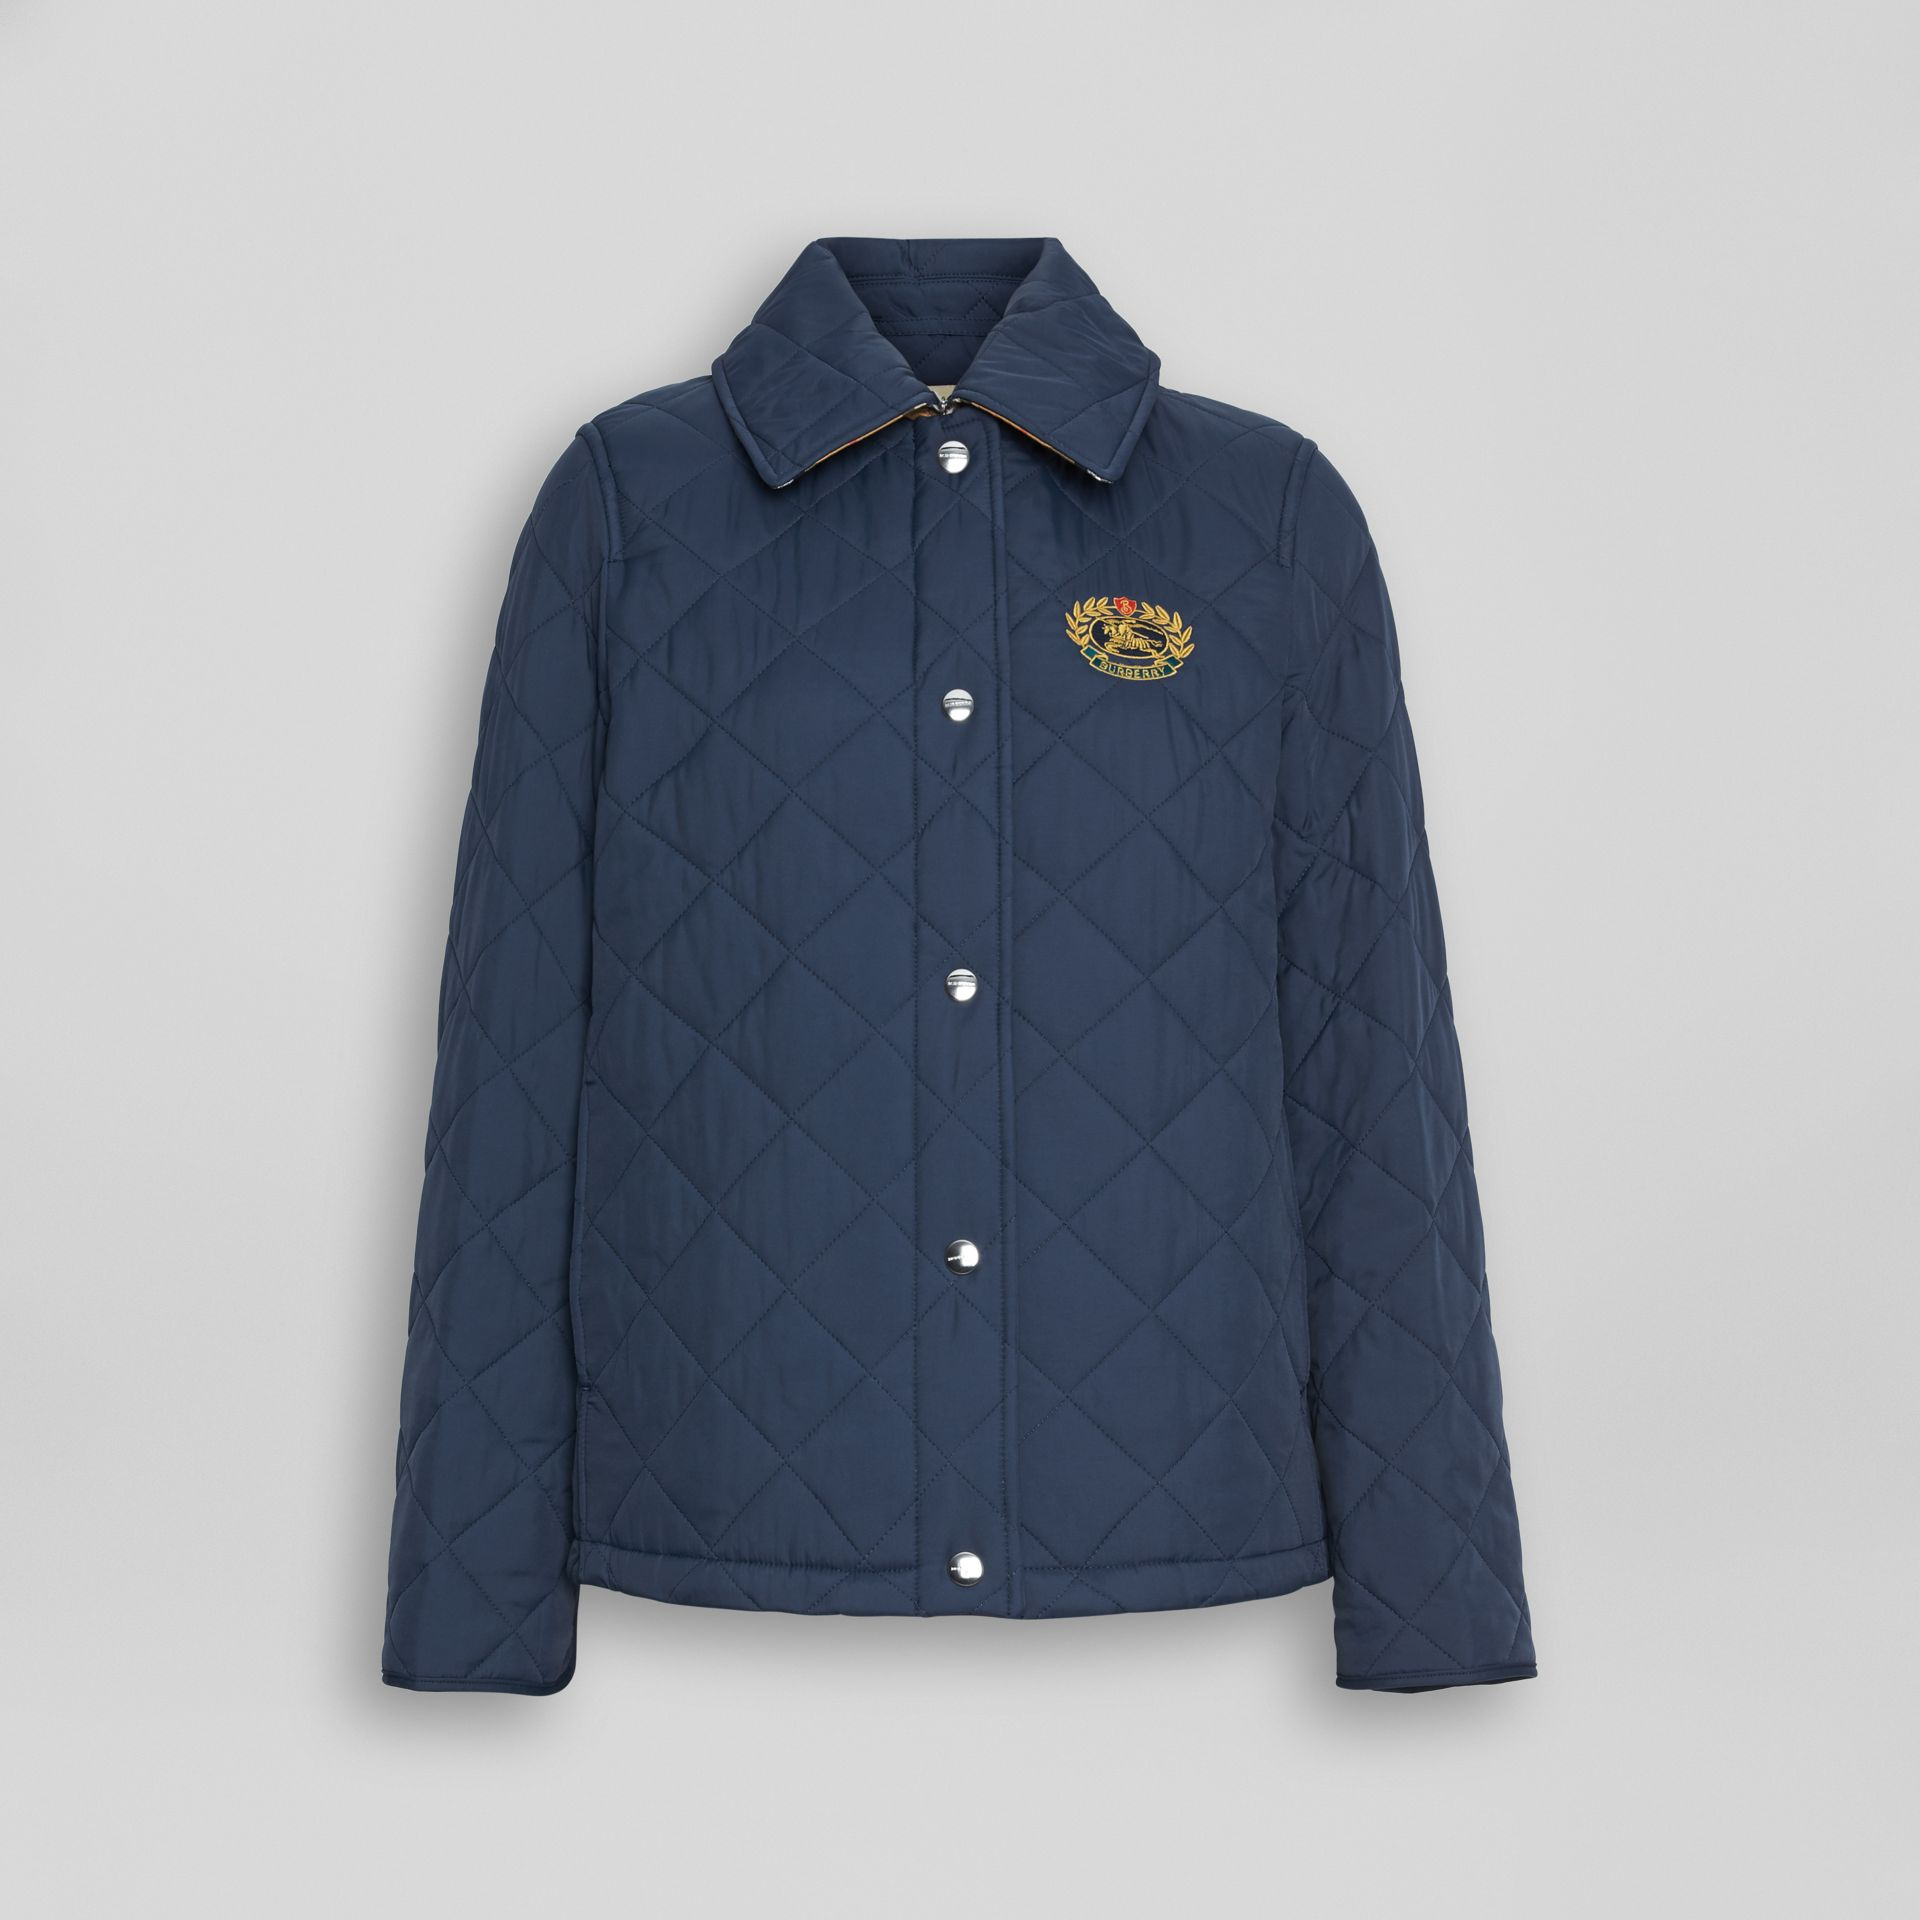 Embroidered Crest Diamond Quilted Jacket in Navy - Women | Burberry Australia - gallery image 3